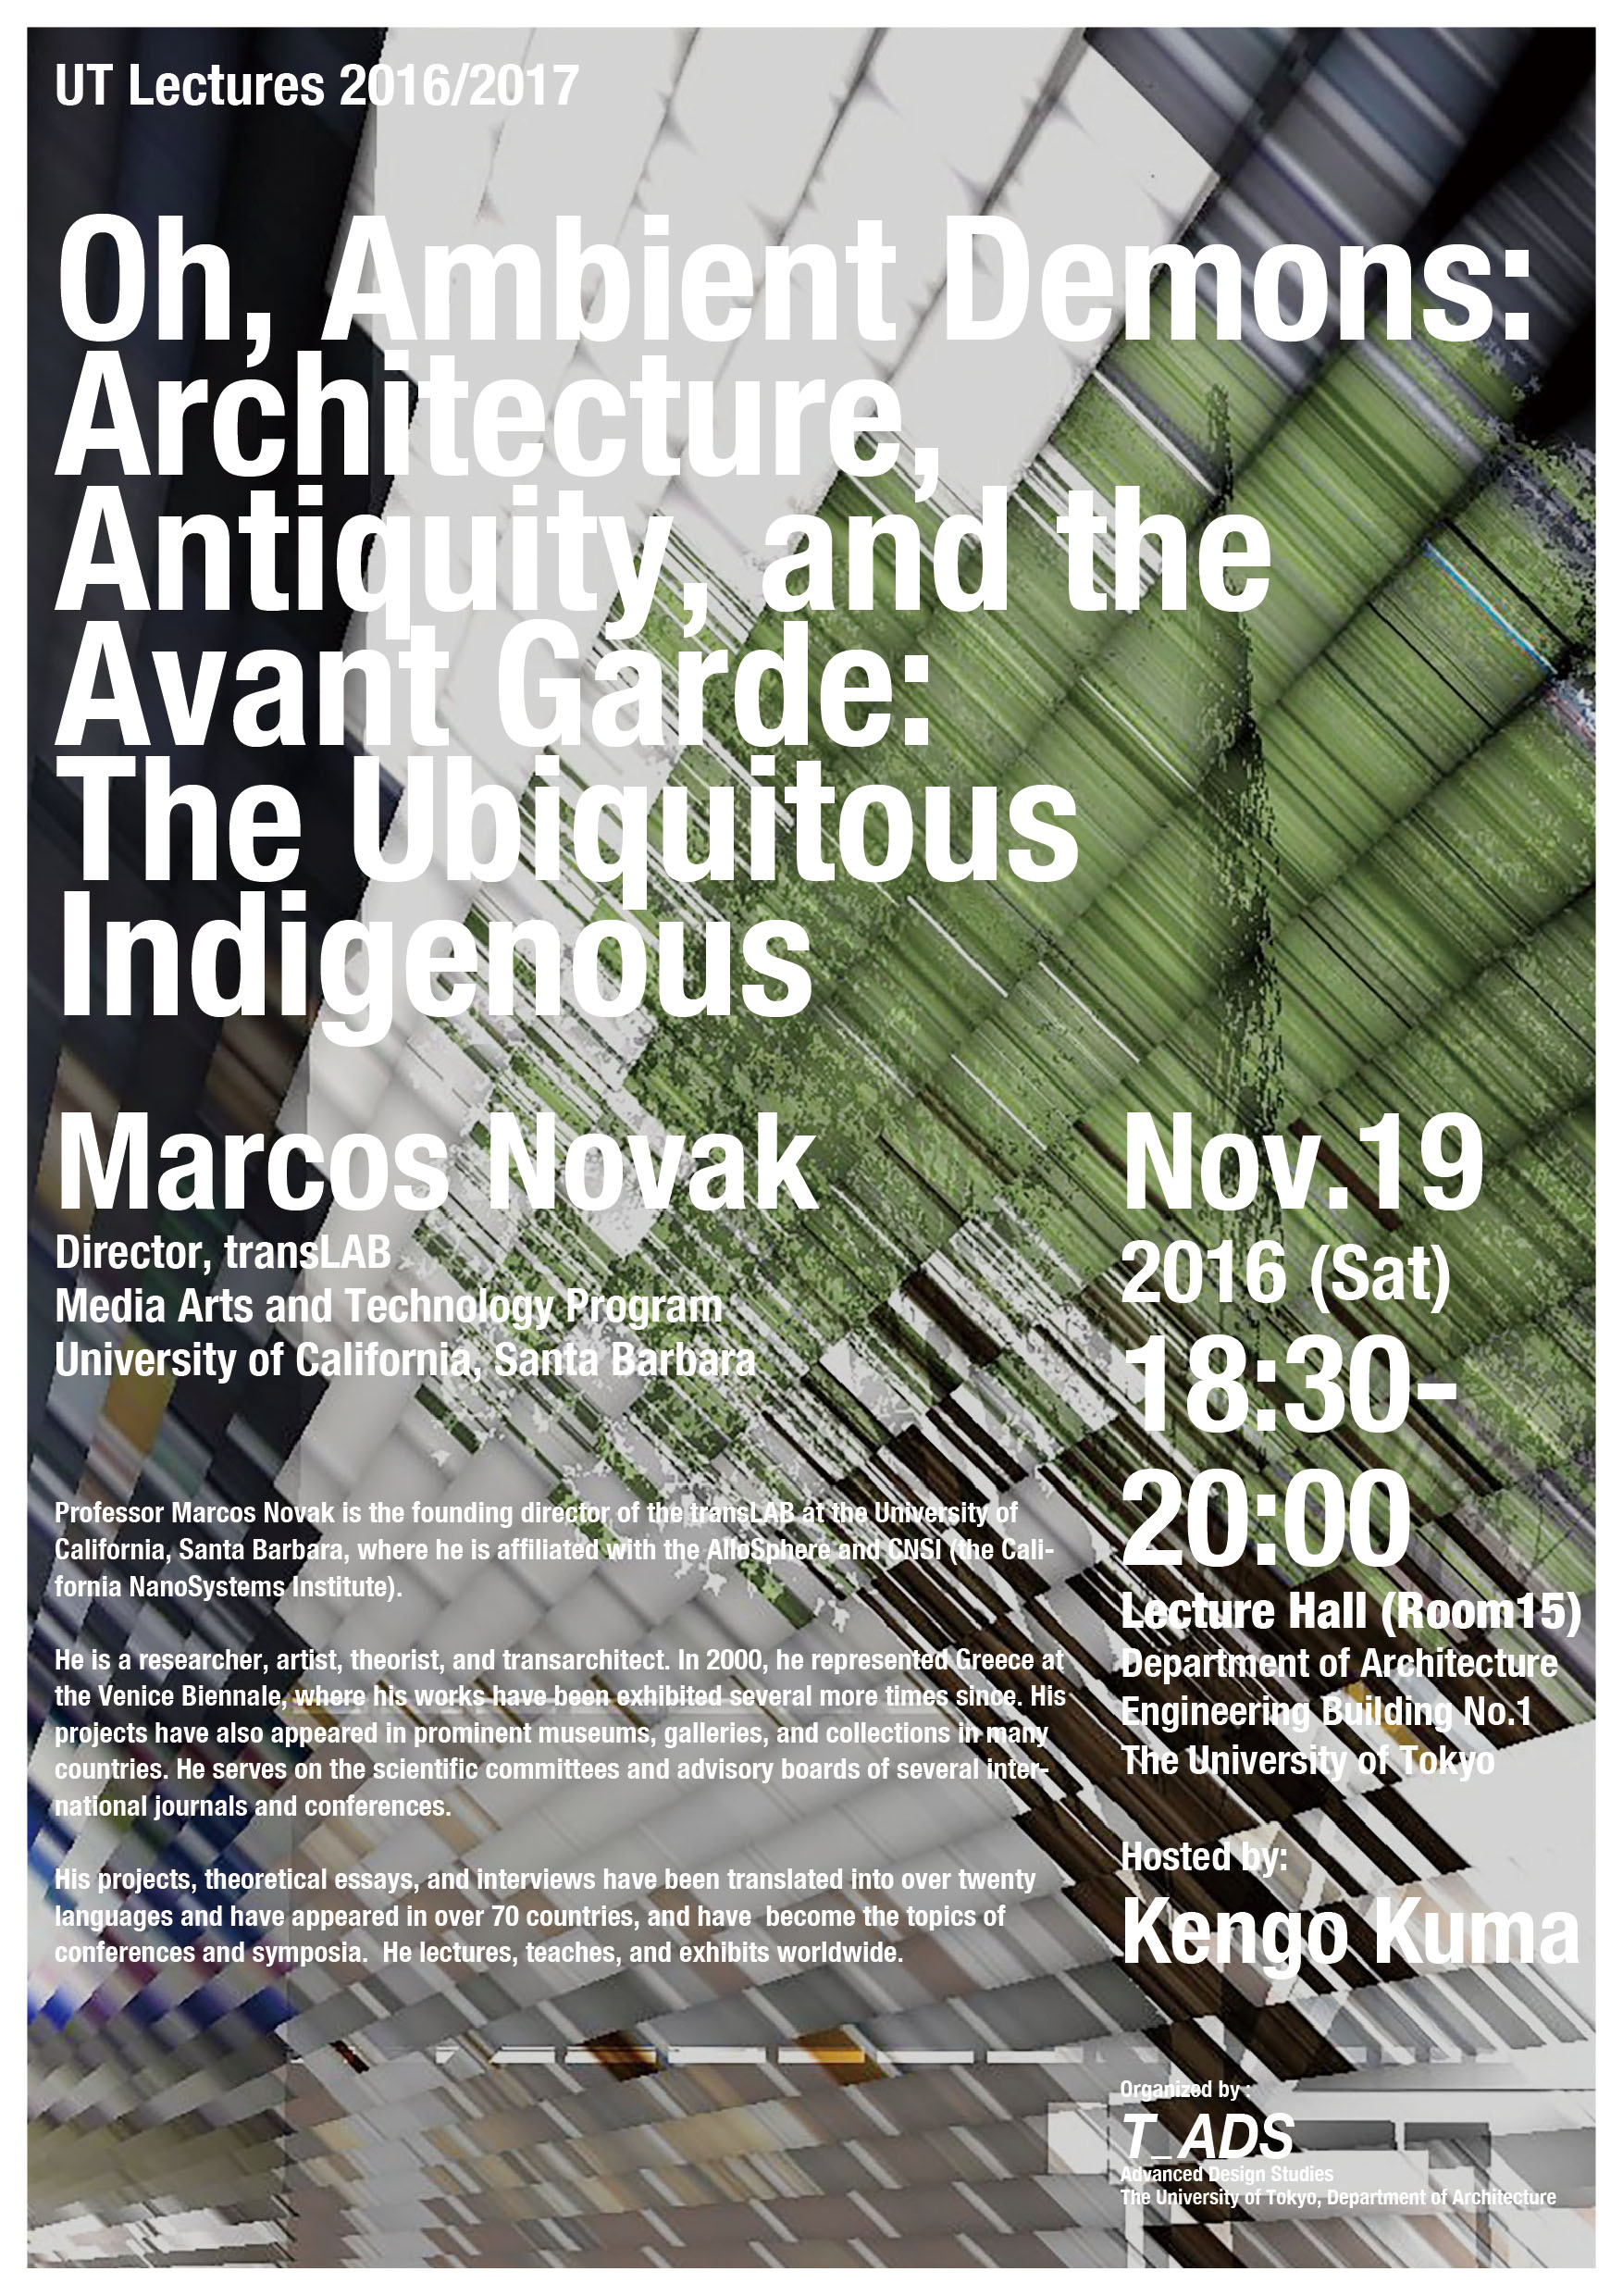 marcos novak oh ambient demons lecture the university of tokyo advanced design studies